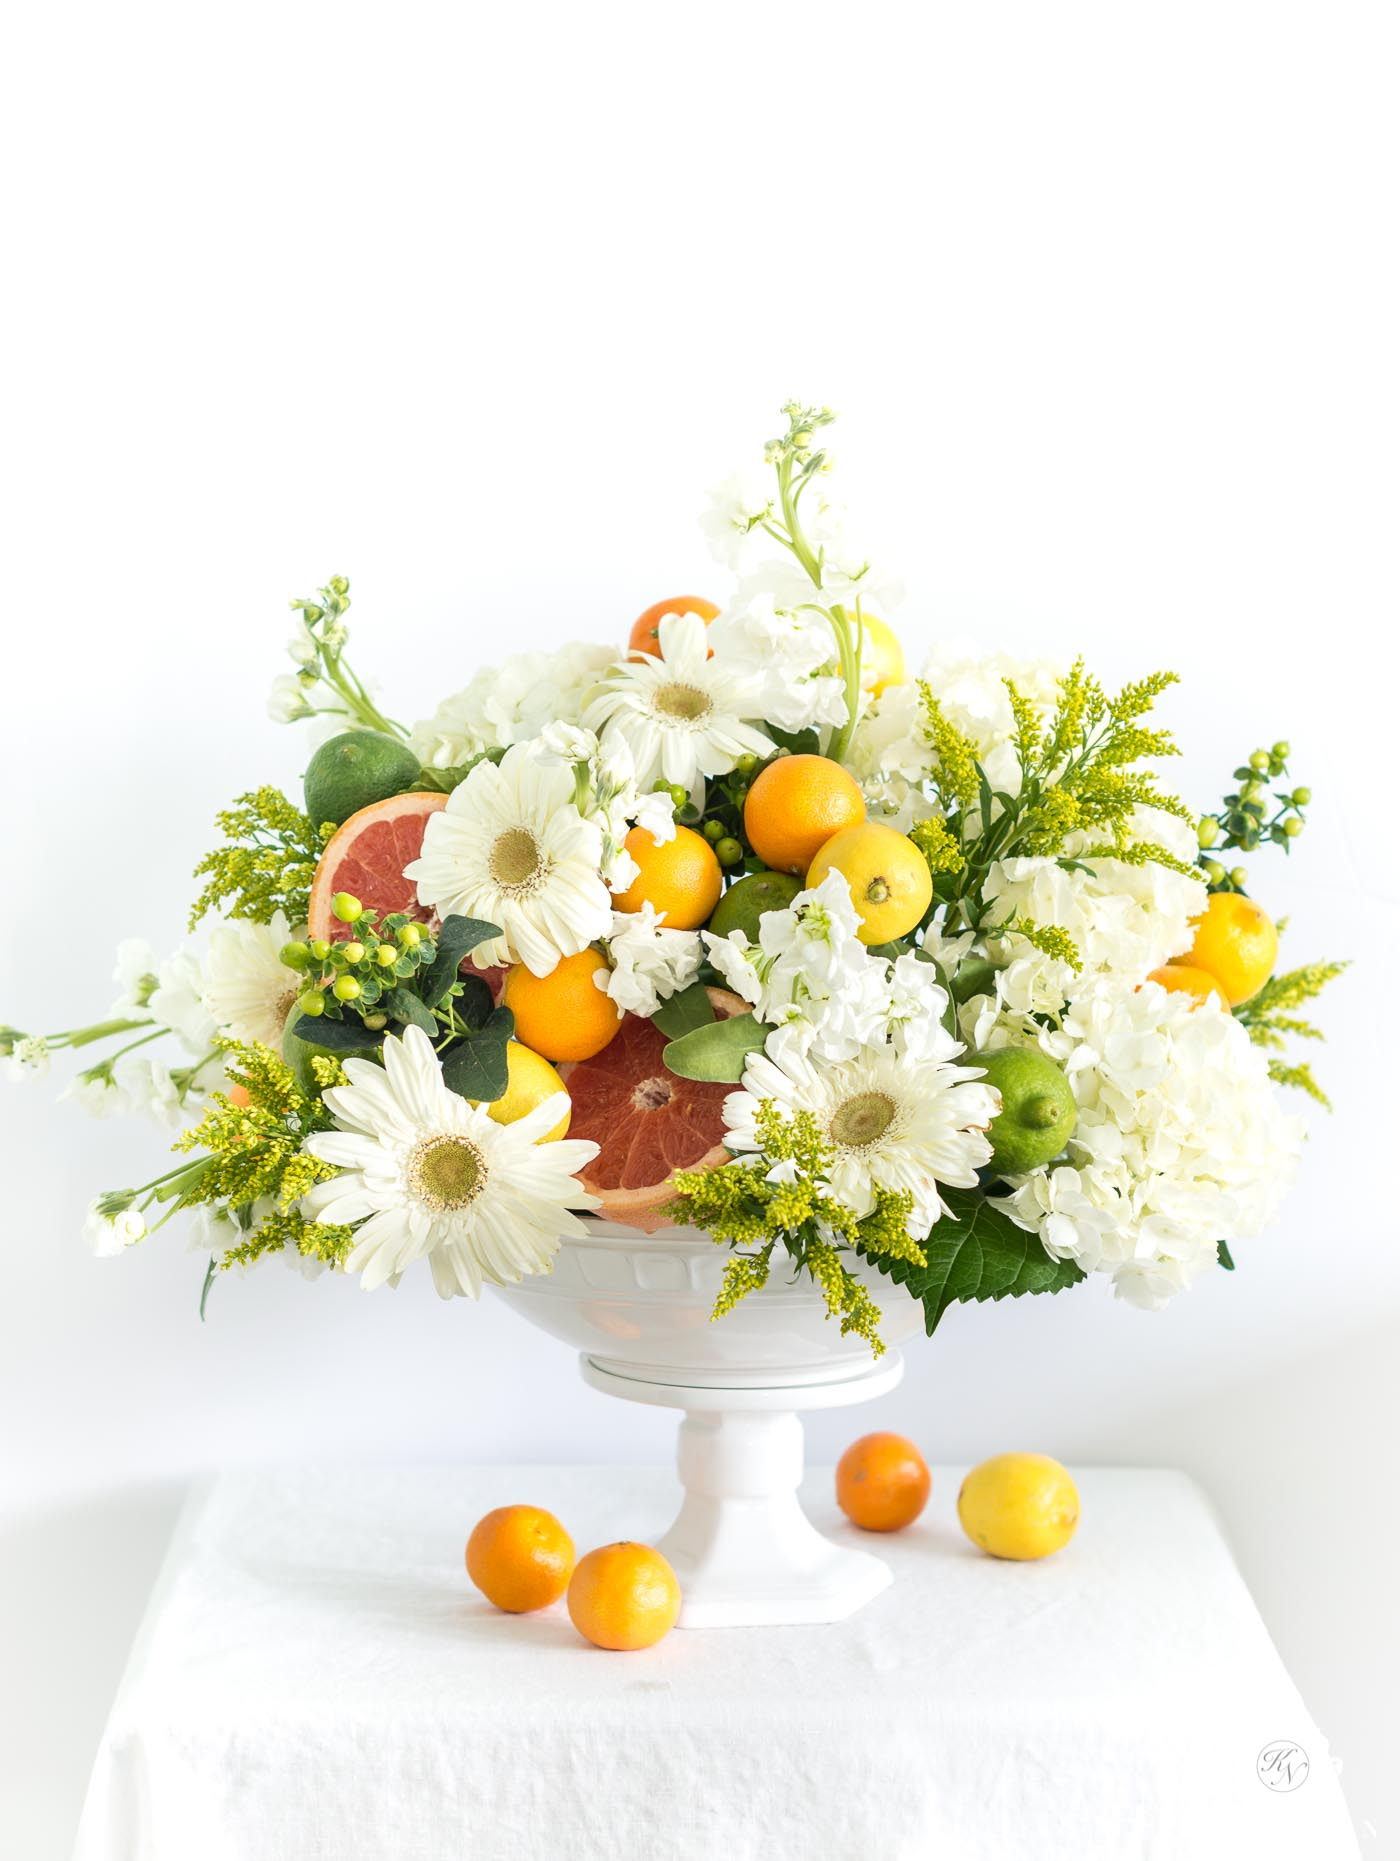 How to create an easy citrus fruit and flower arrangement centerpiece